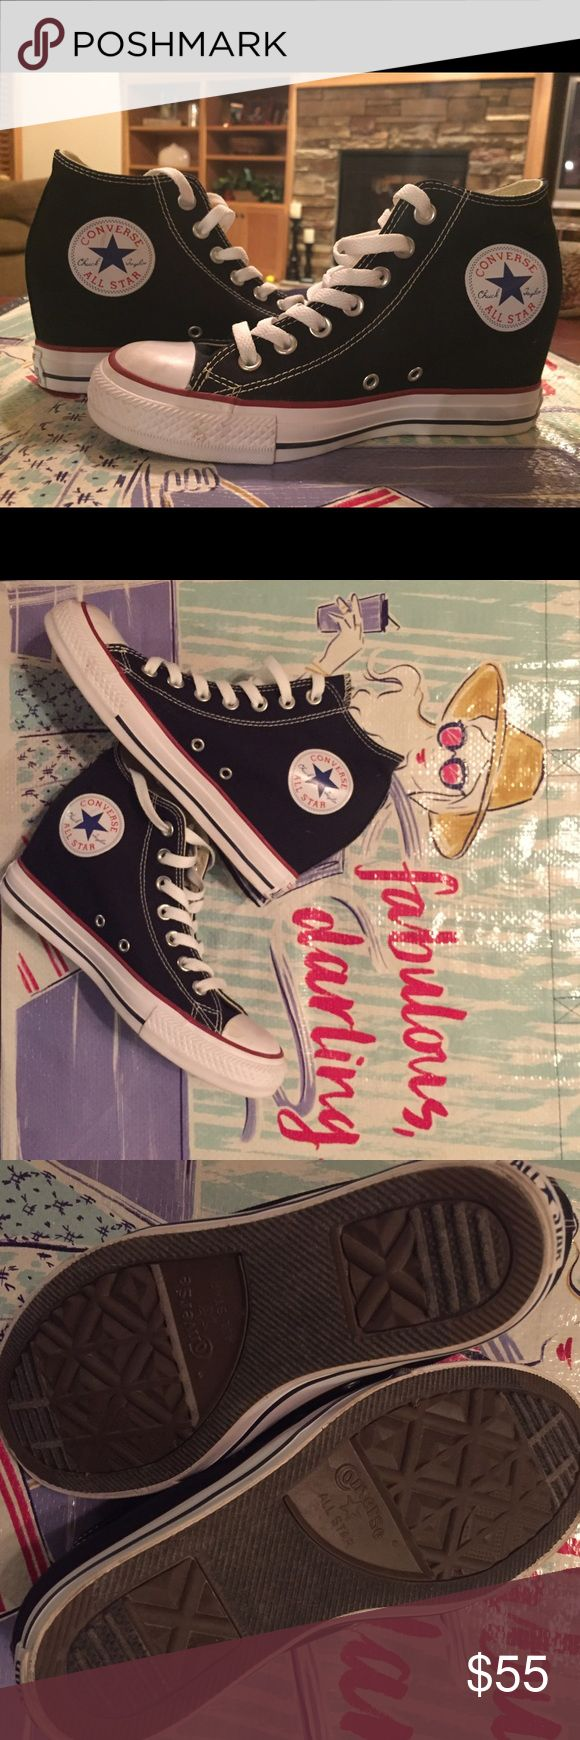 Converse wedge sneakers size 8 Worn twice! Converse wedge sneakers! So cute! I wish I could keep but are a hair too small. Converse Shoes Wedges